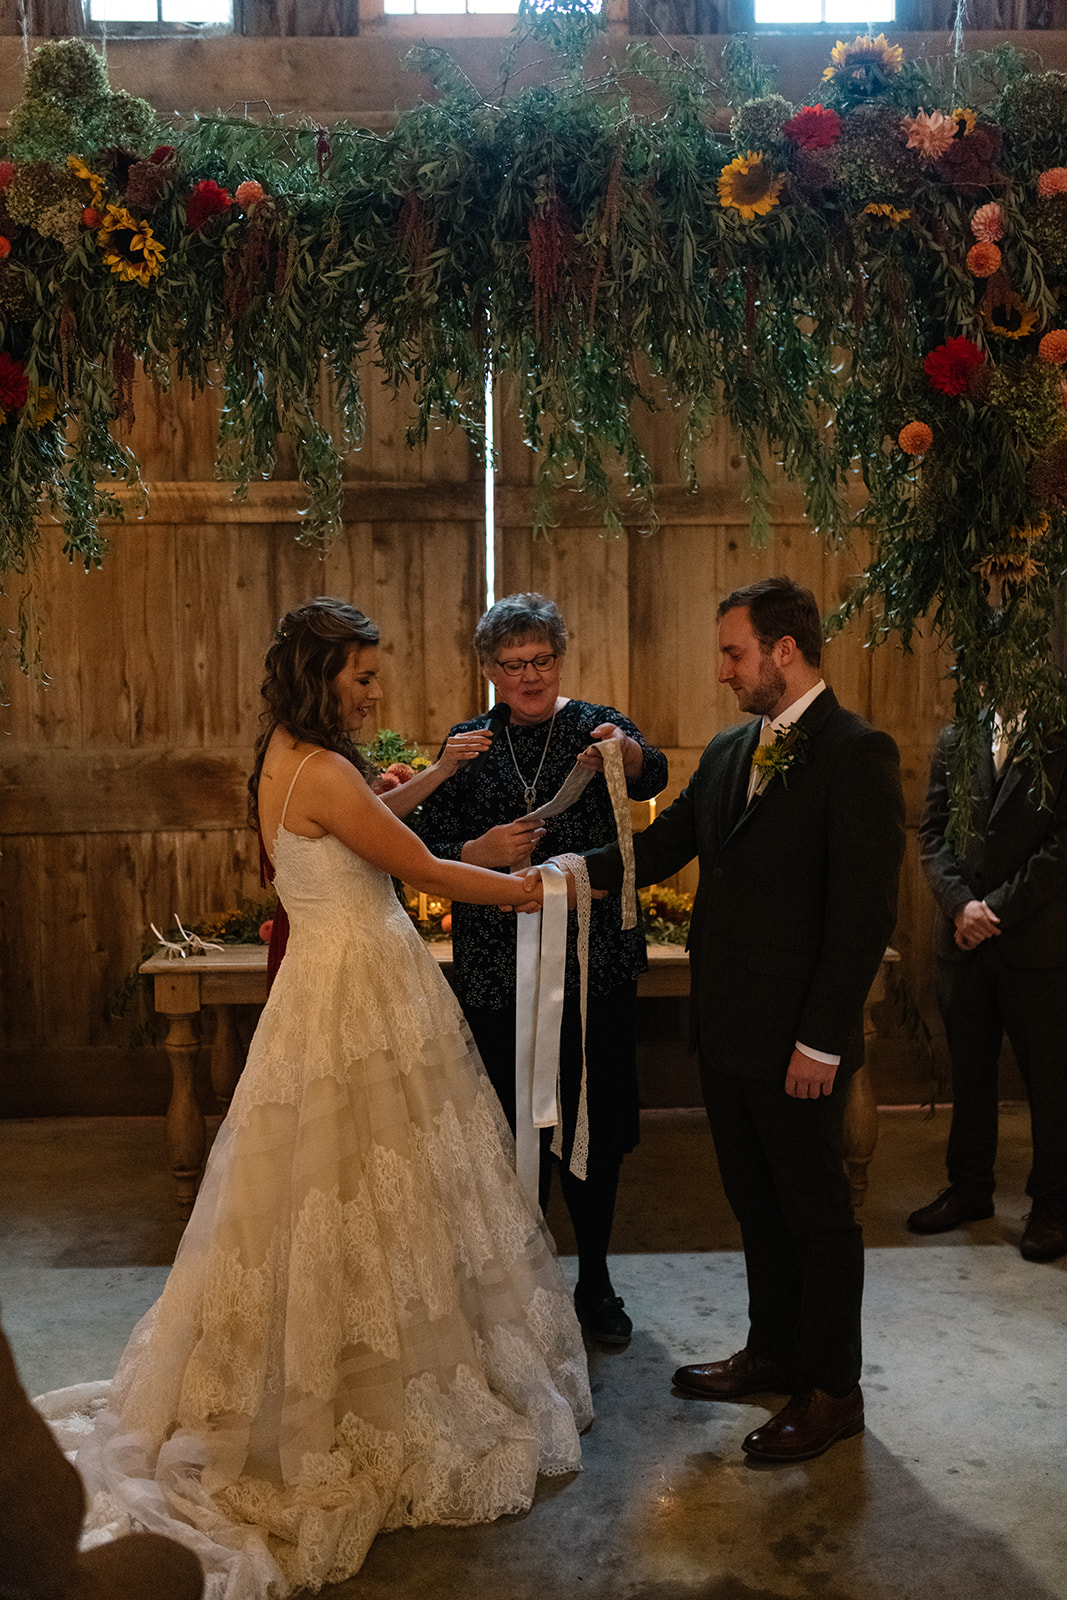 knot ceremony at the barn iowa fall wedding